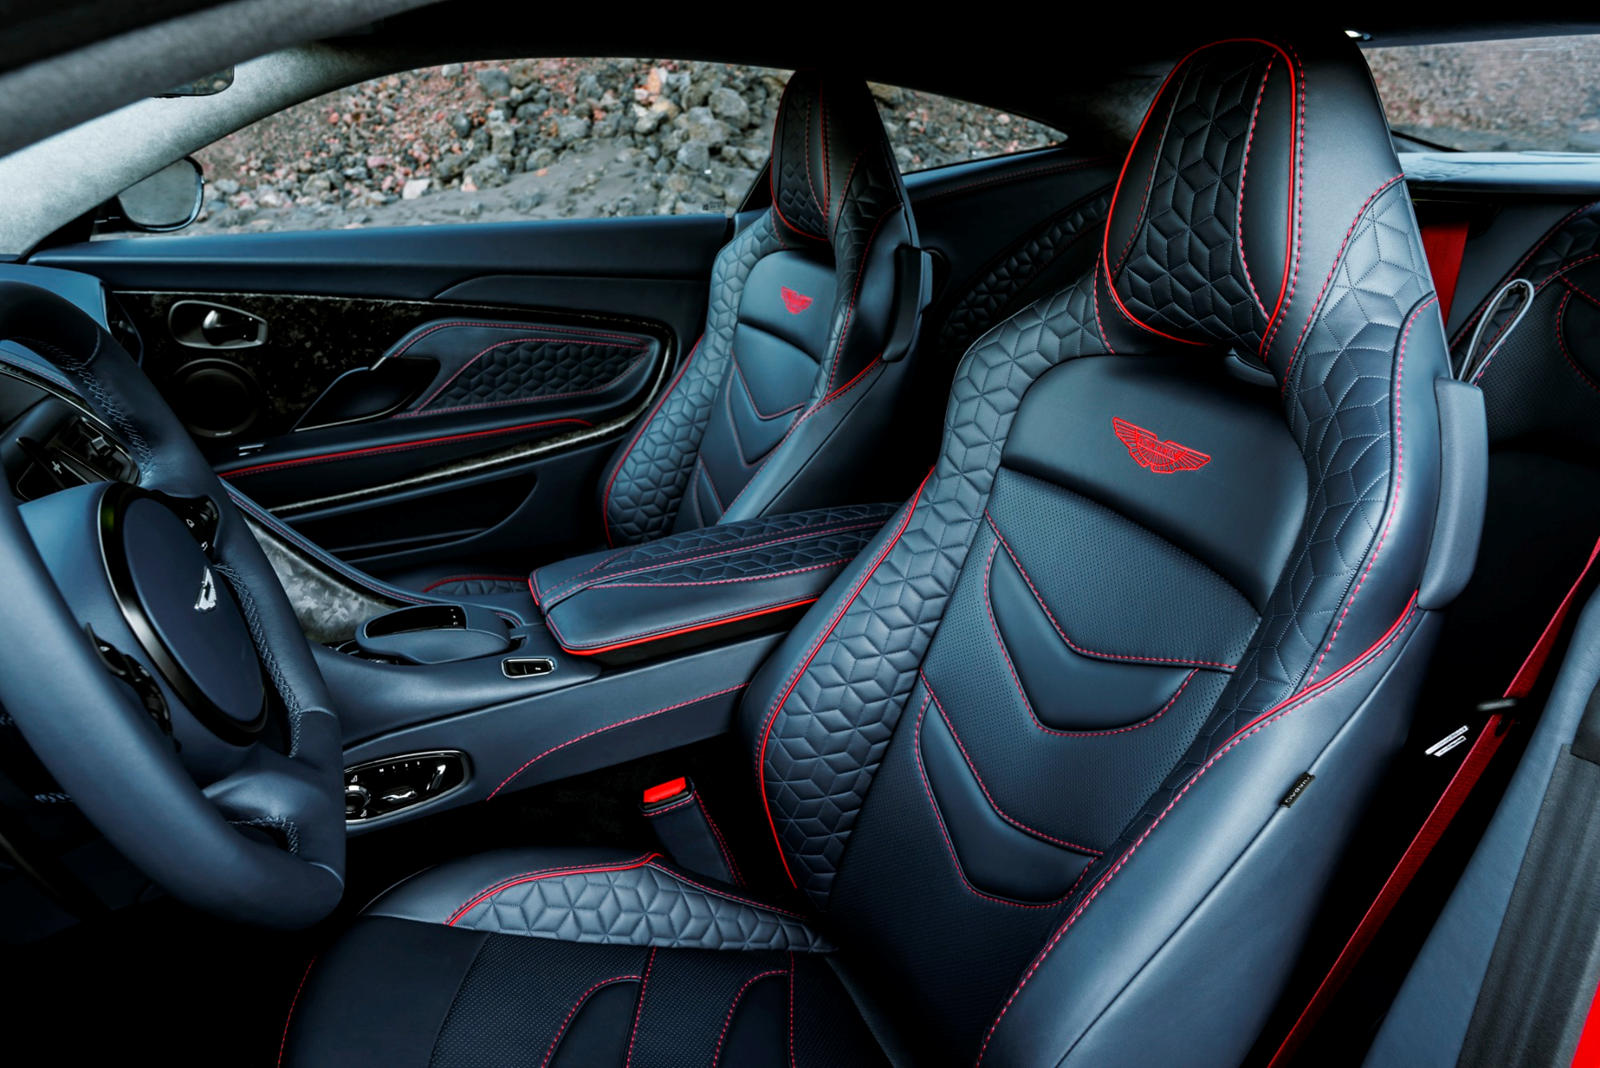 2021 Aston Martin Dbs Superleggera Review Features Performance Acceleration And Rivals